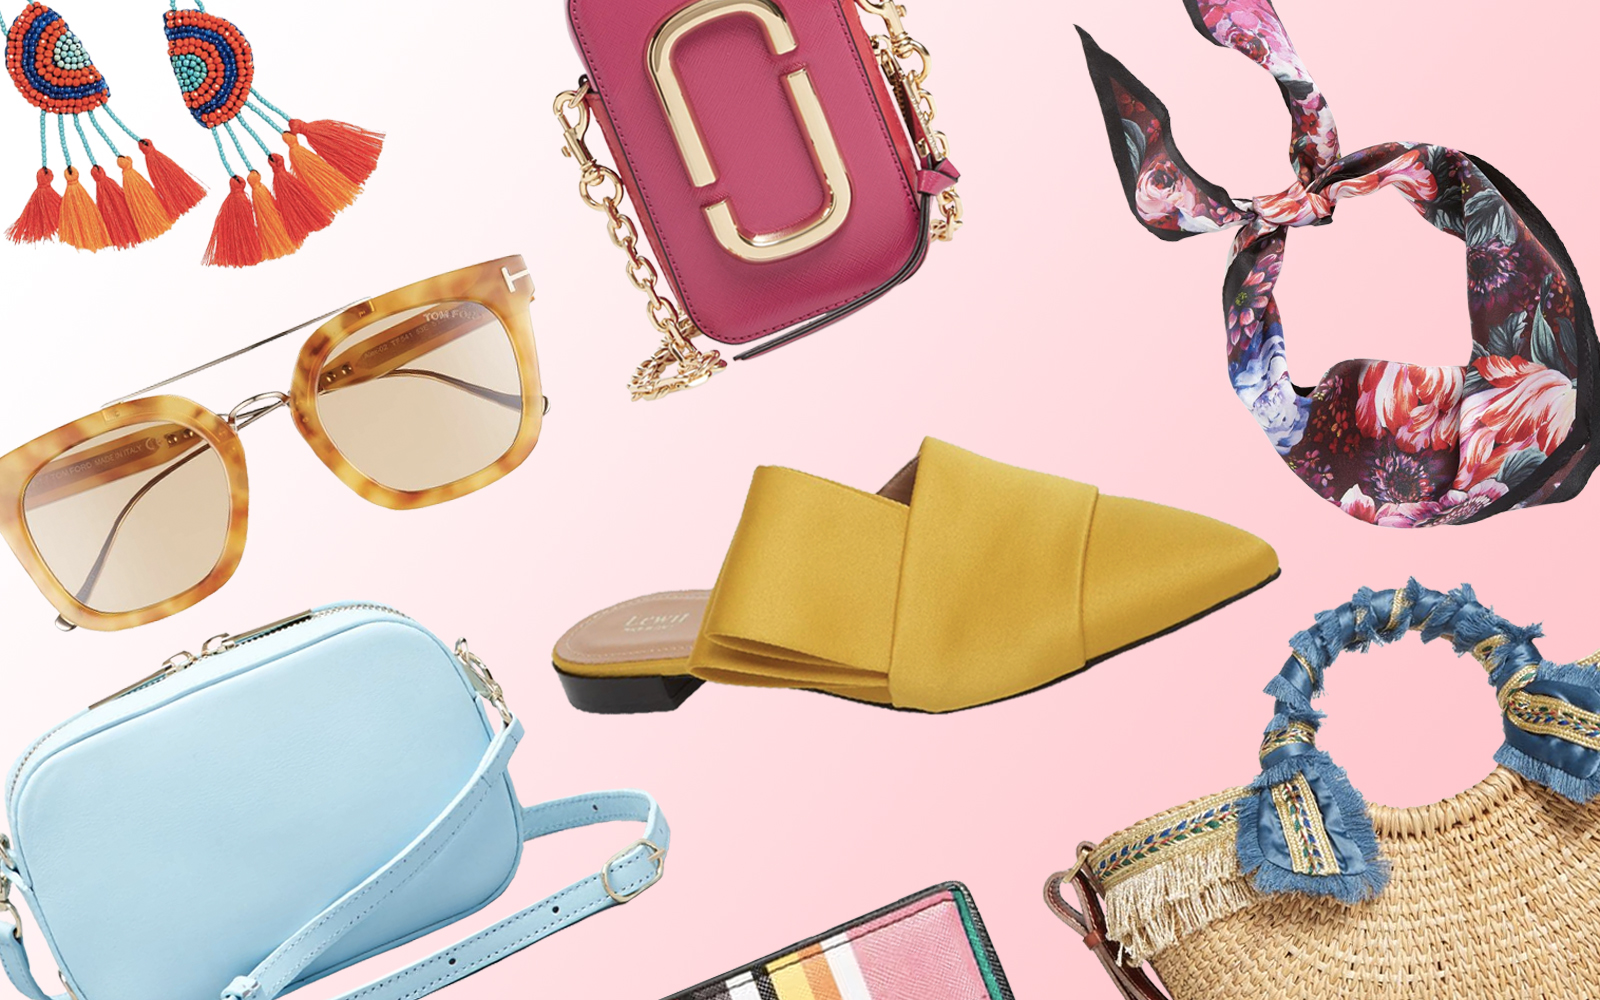 Nordstrom's 40% Off Sale Is the Perfect Chance to Stock up on Summer Accessories